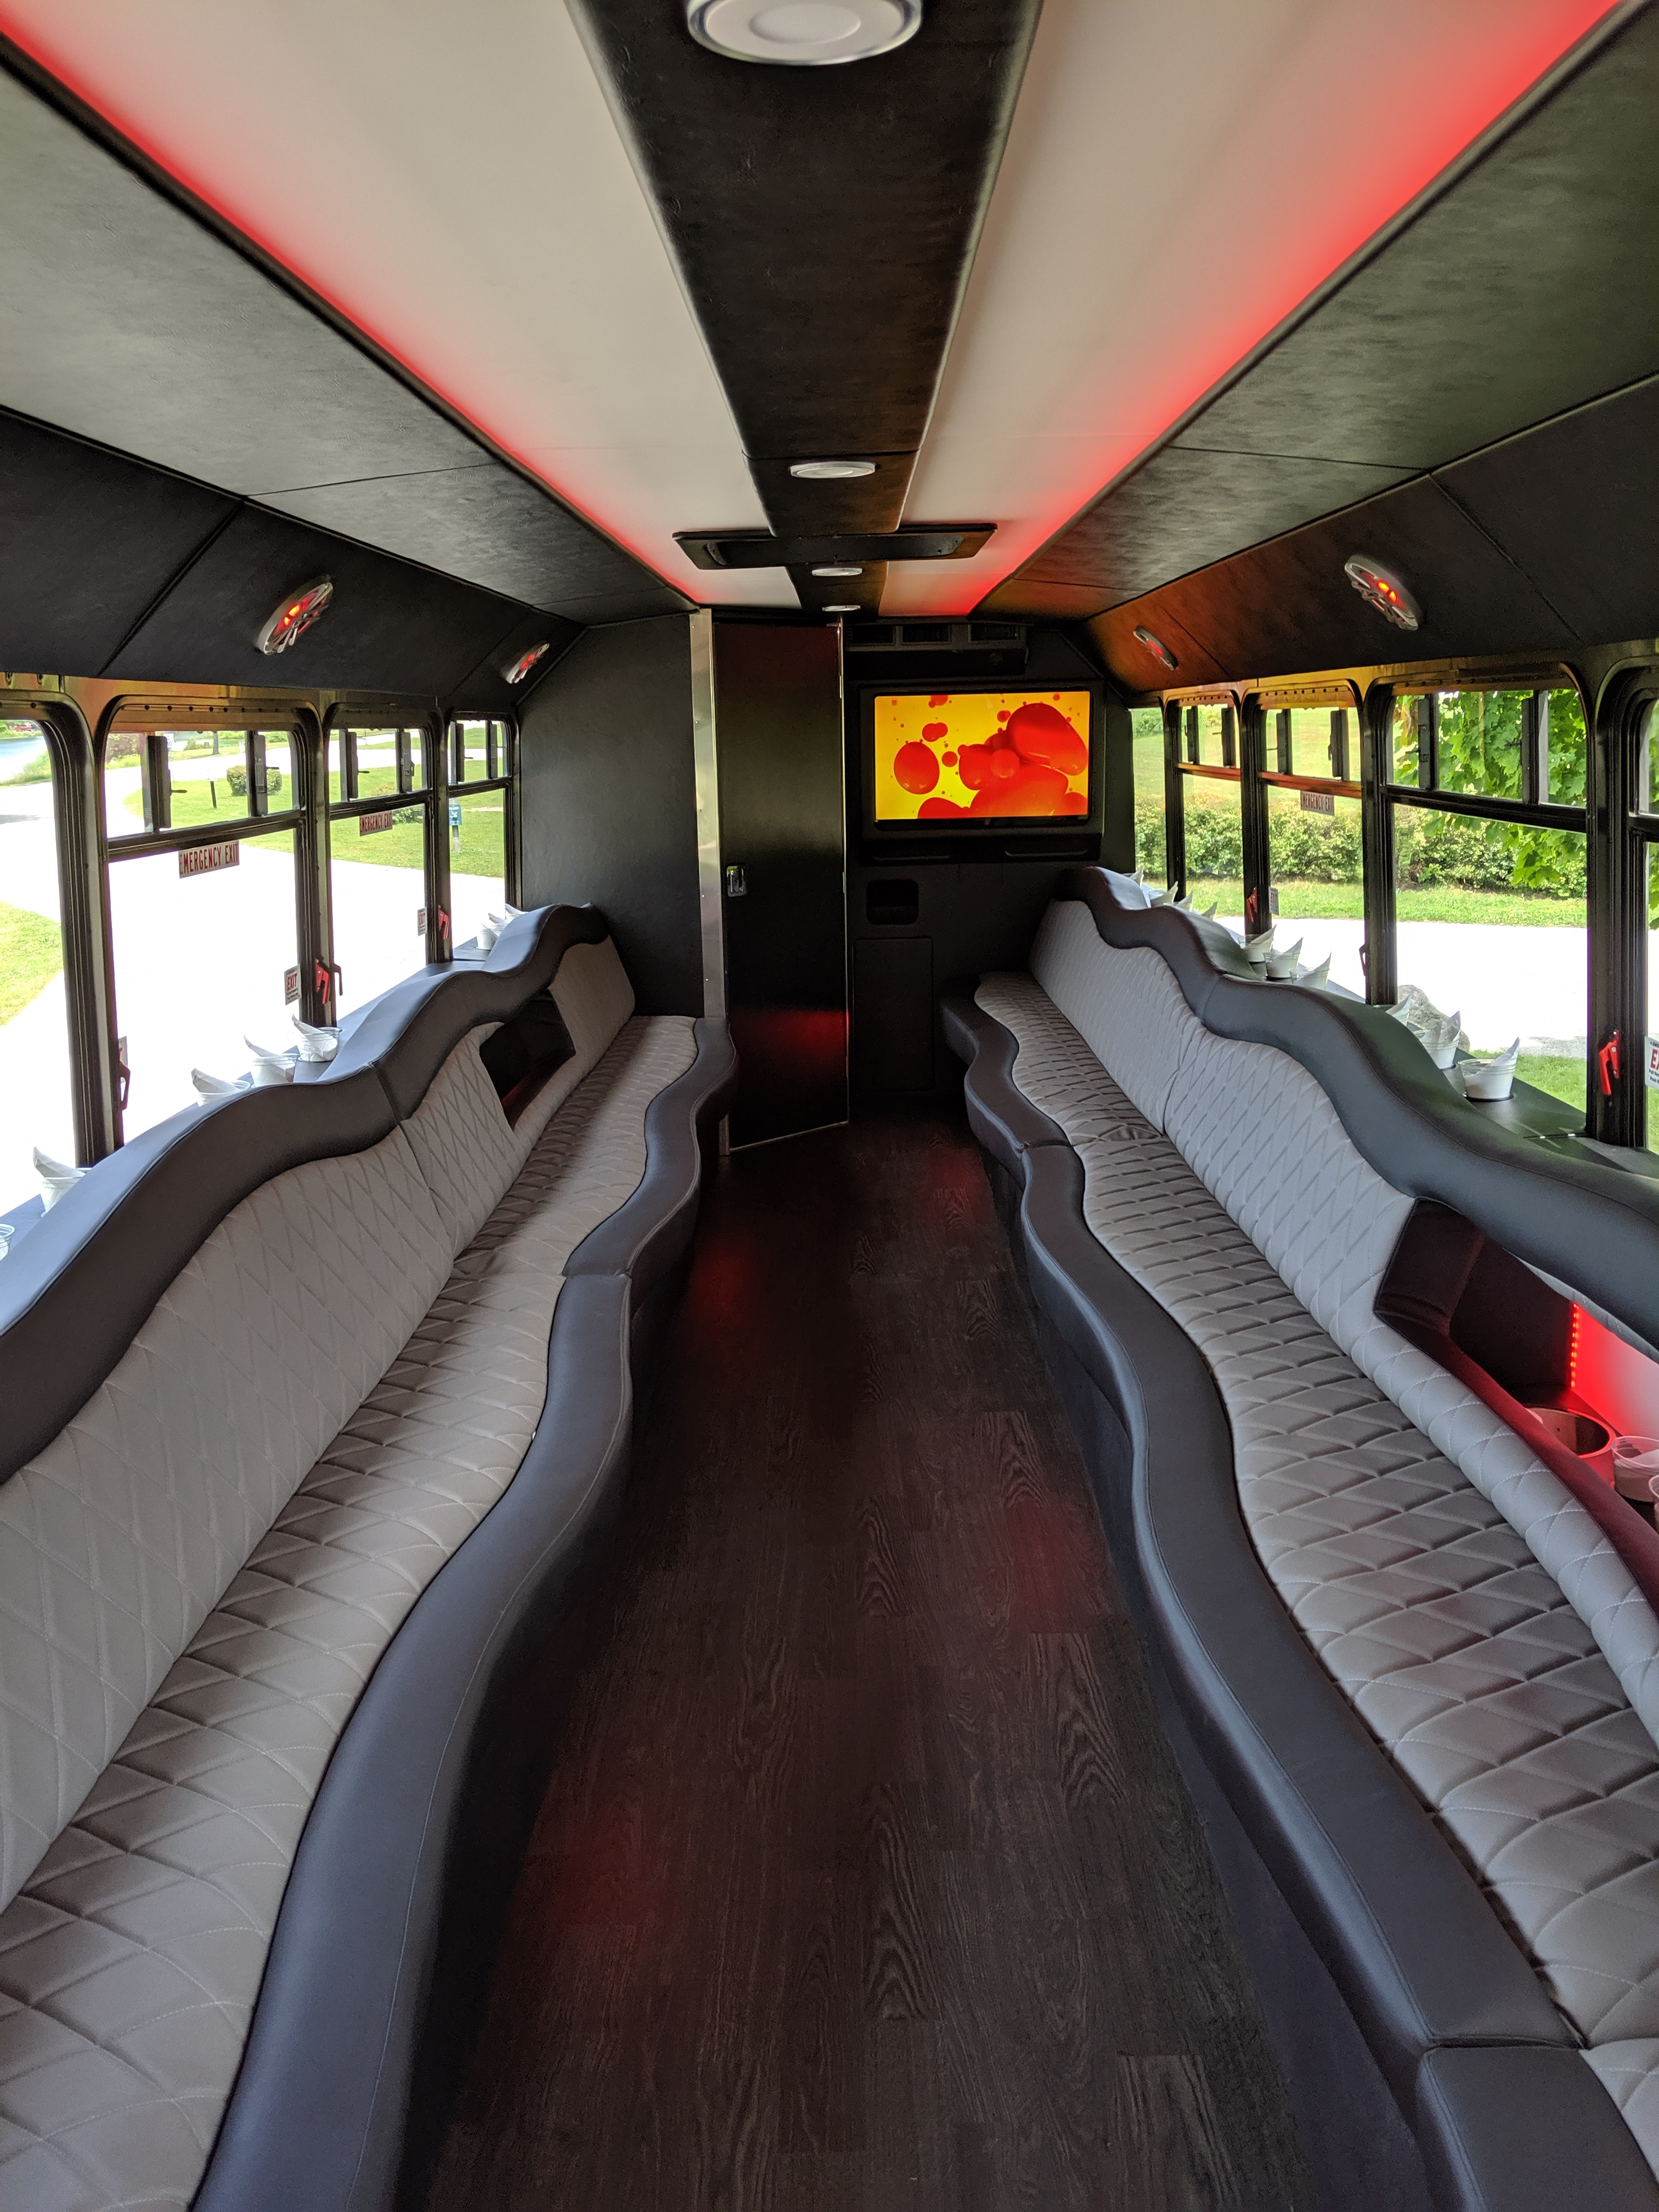 30 Passenger Luxury Limo Bus Interior 3